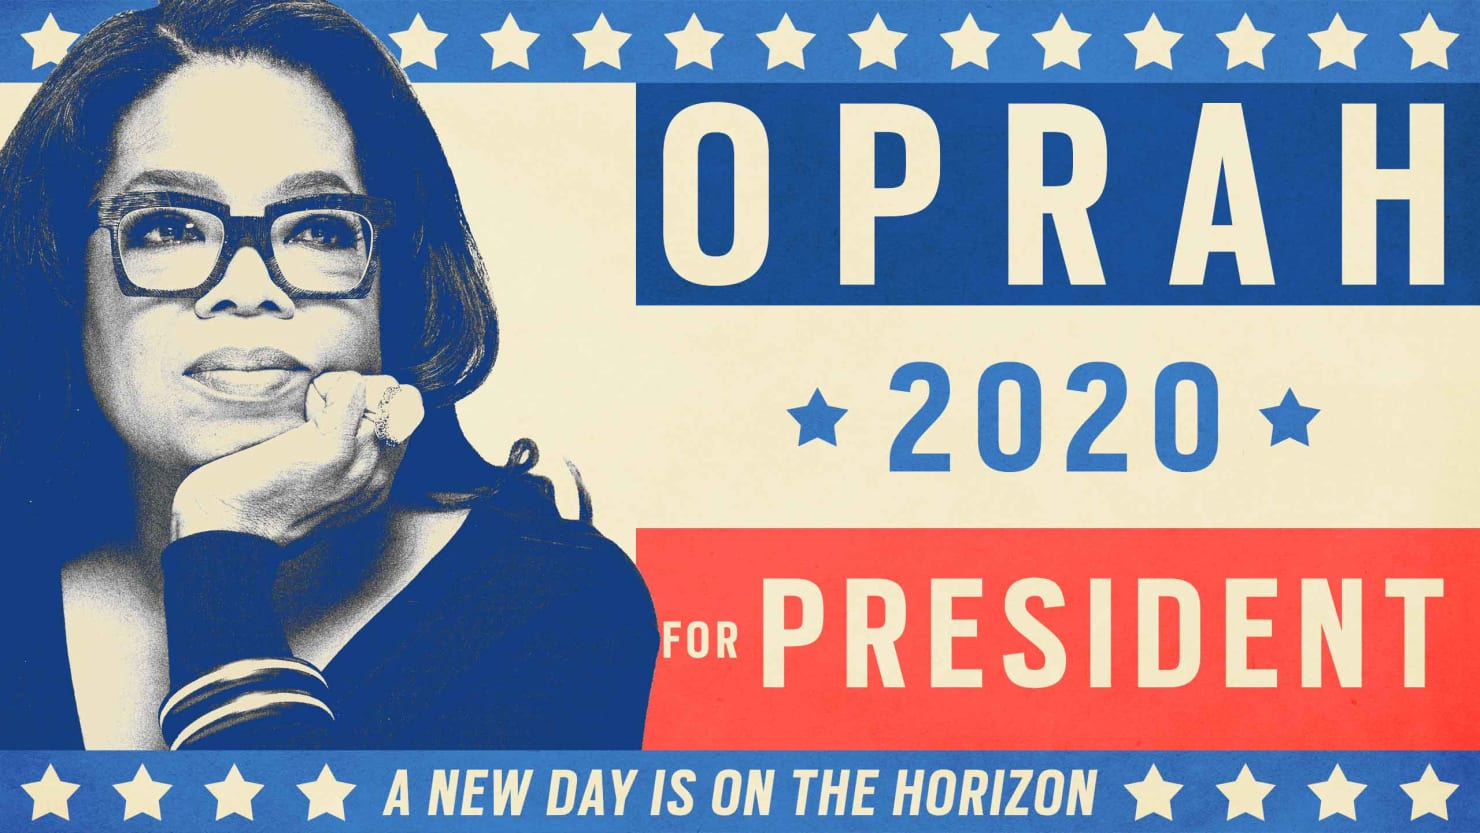 the oprah 2020 fantasy saving us from our shthole president